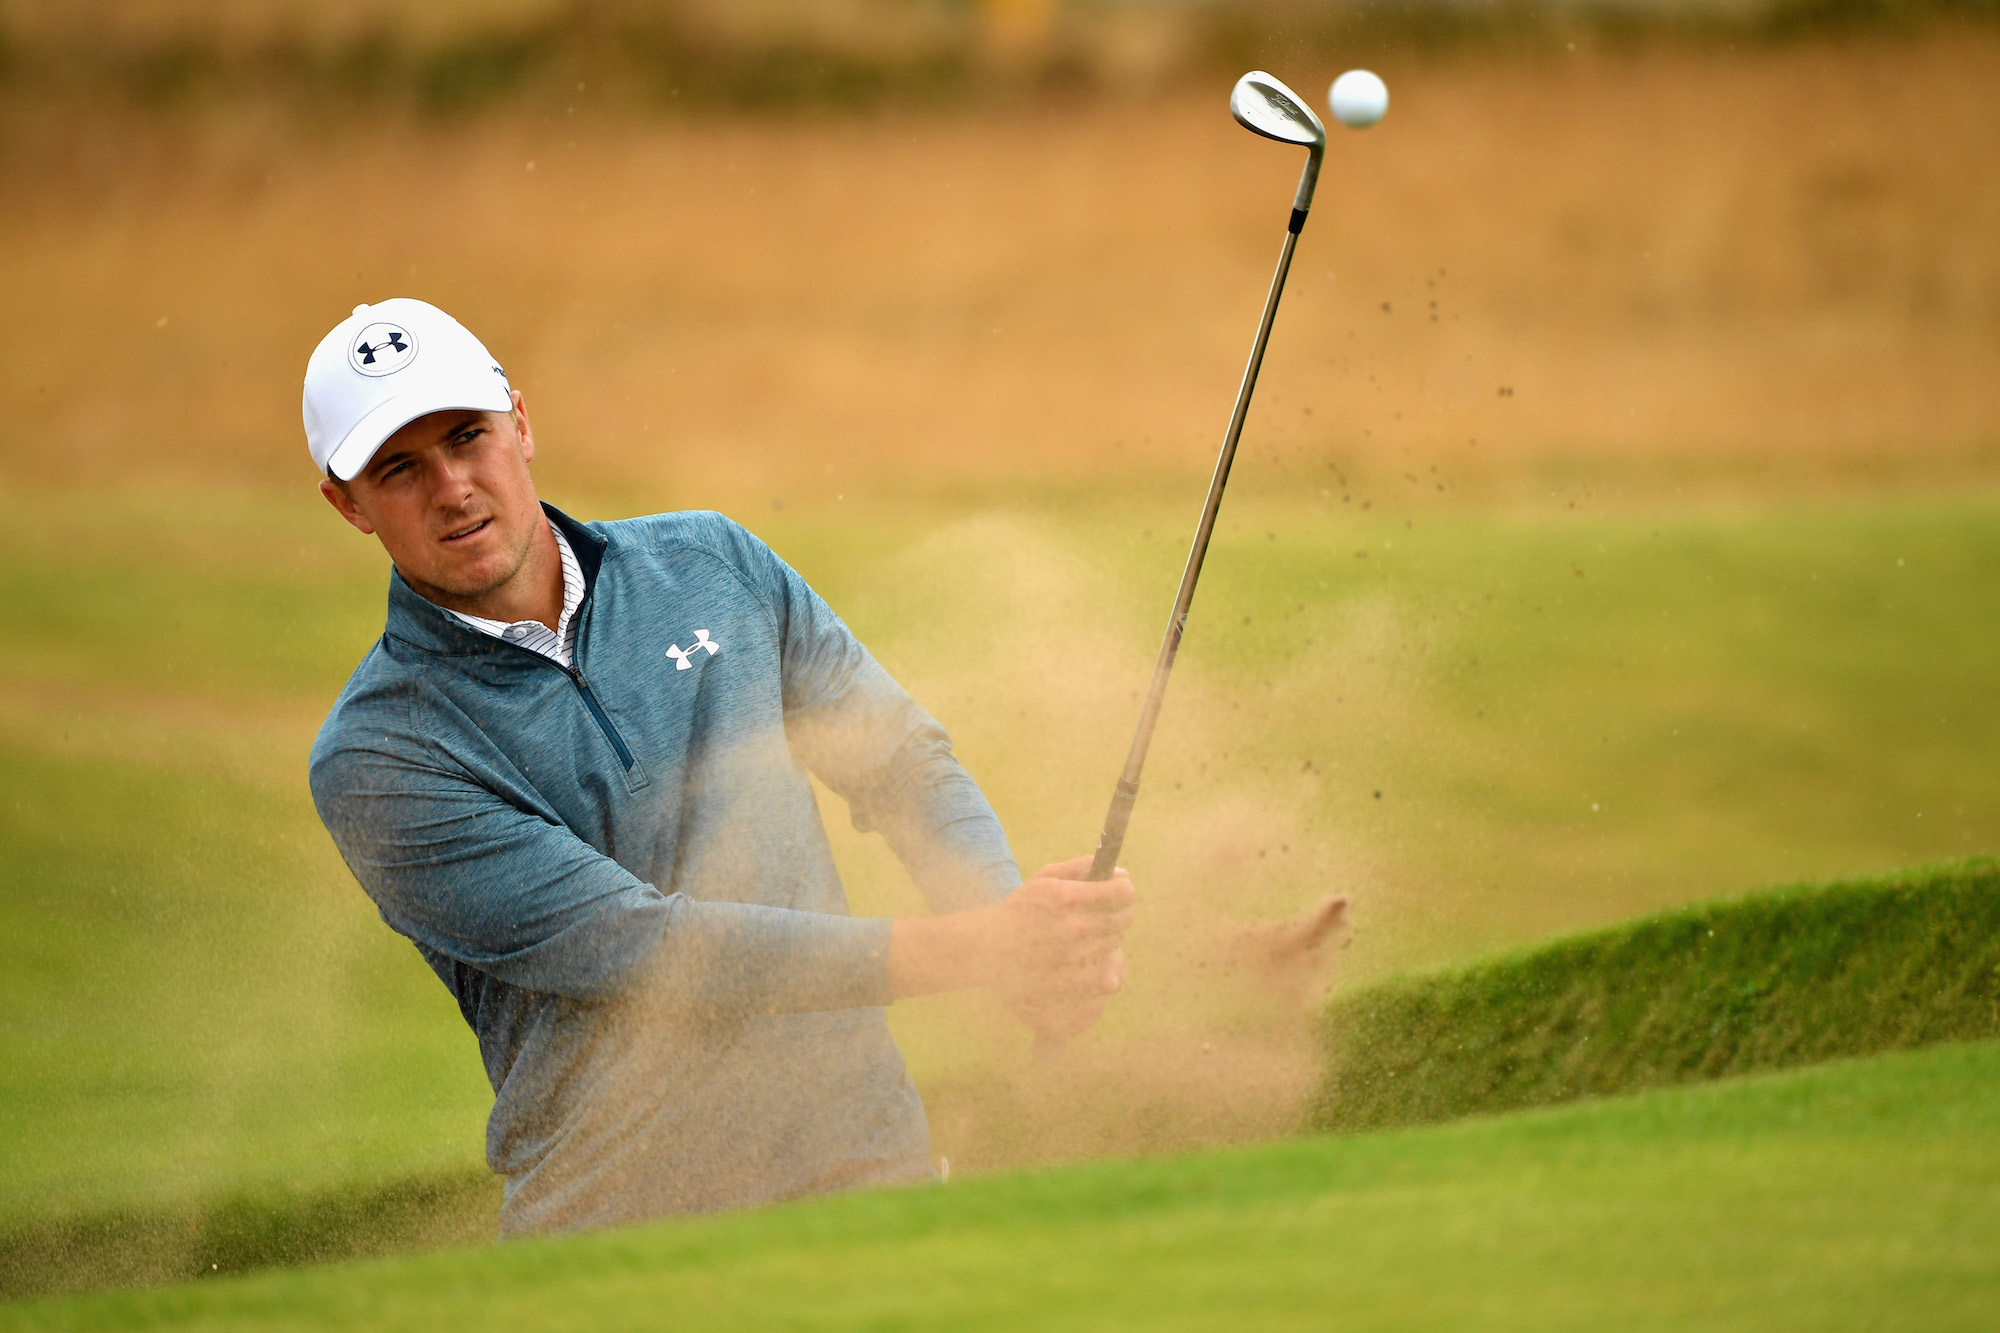 2018 Open Championship: Previews - Hitting Out of Bunker